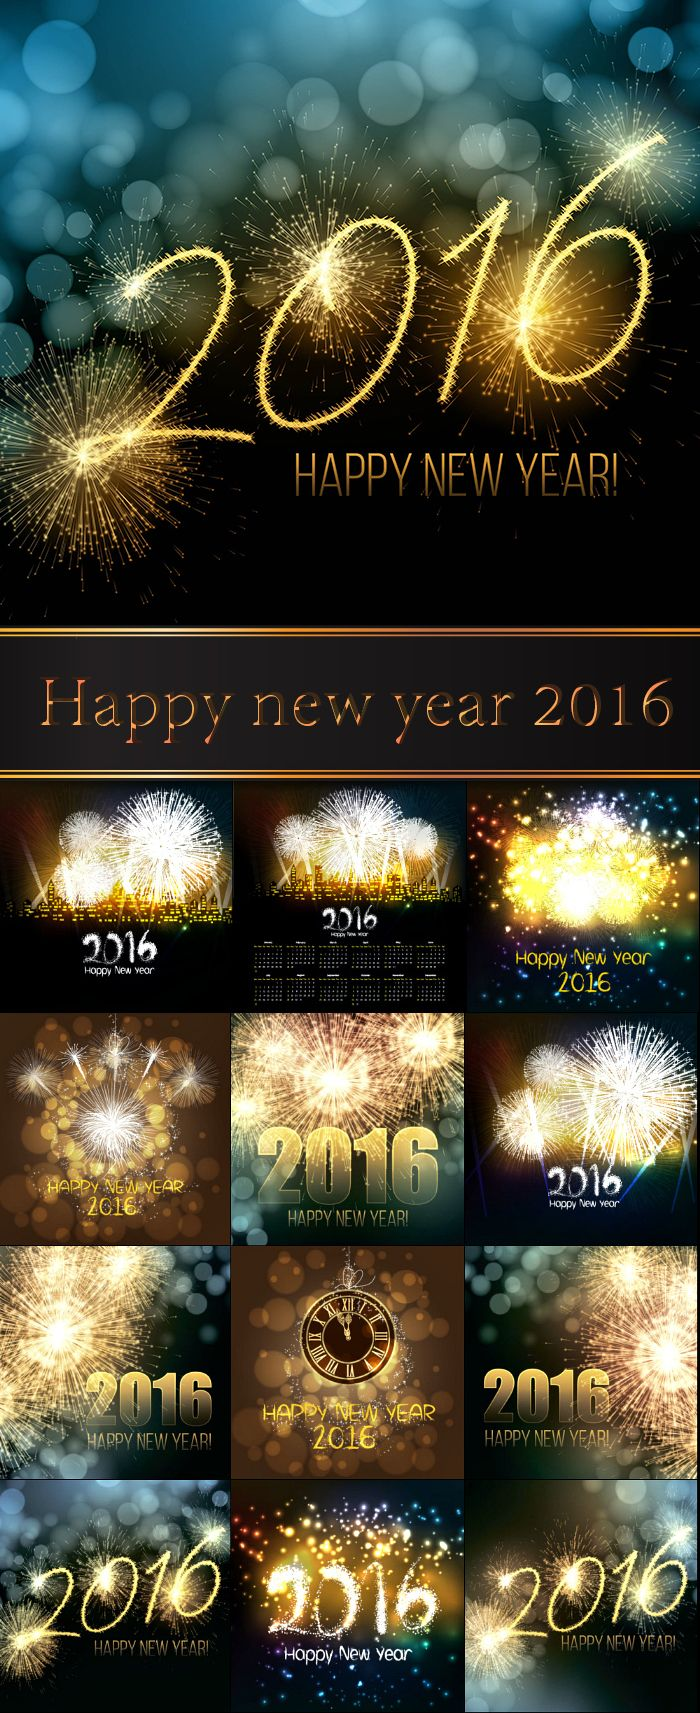 2k16 happy new year